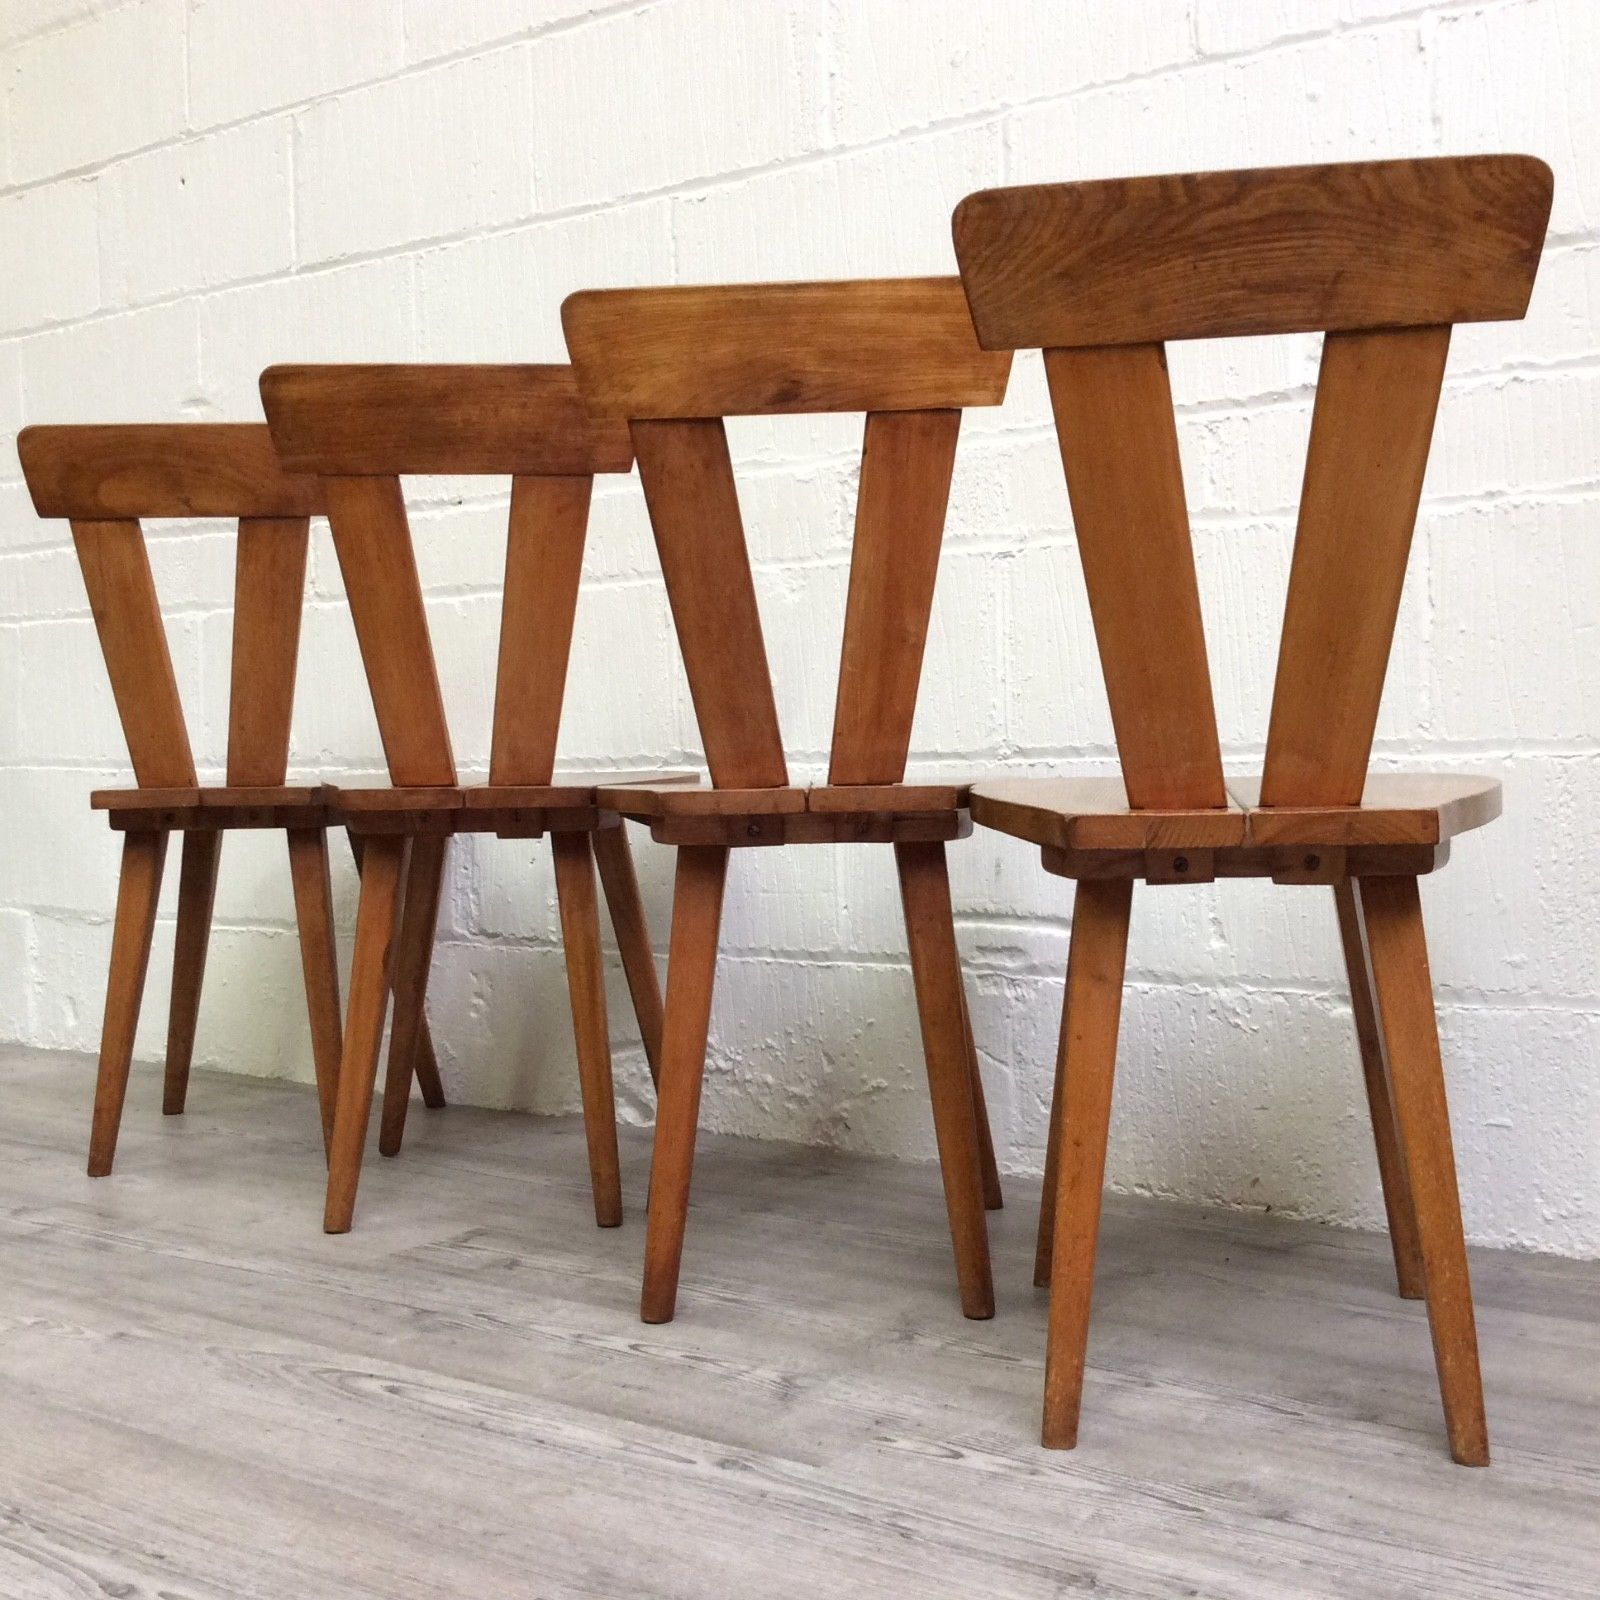 A Set Of 4 Polish Arts Crafts Dining Chairs Dated 1946 By Wincze